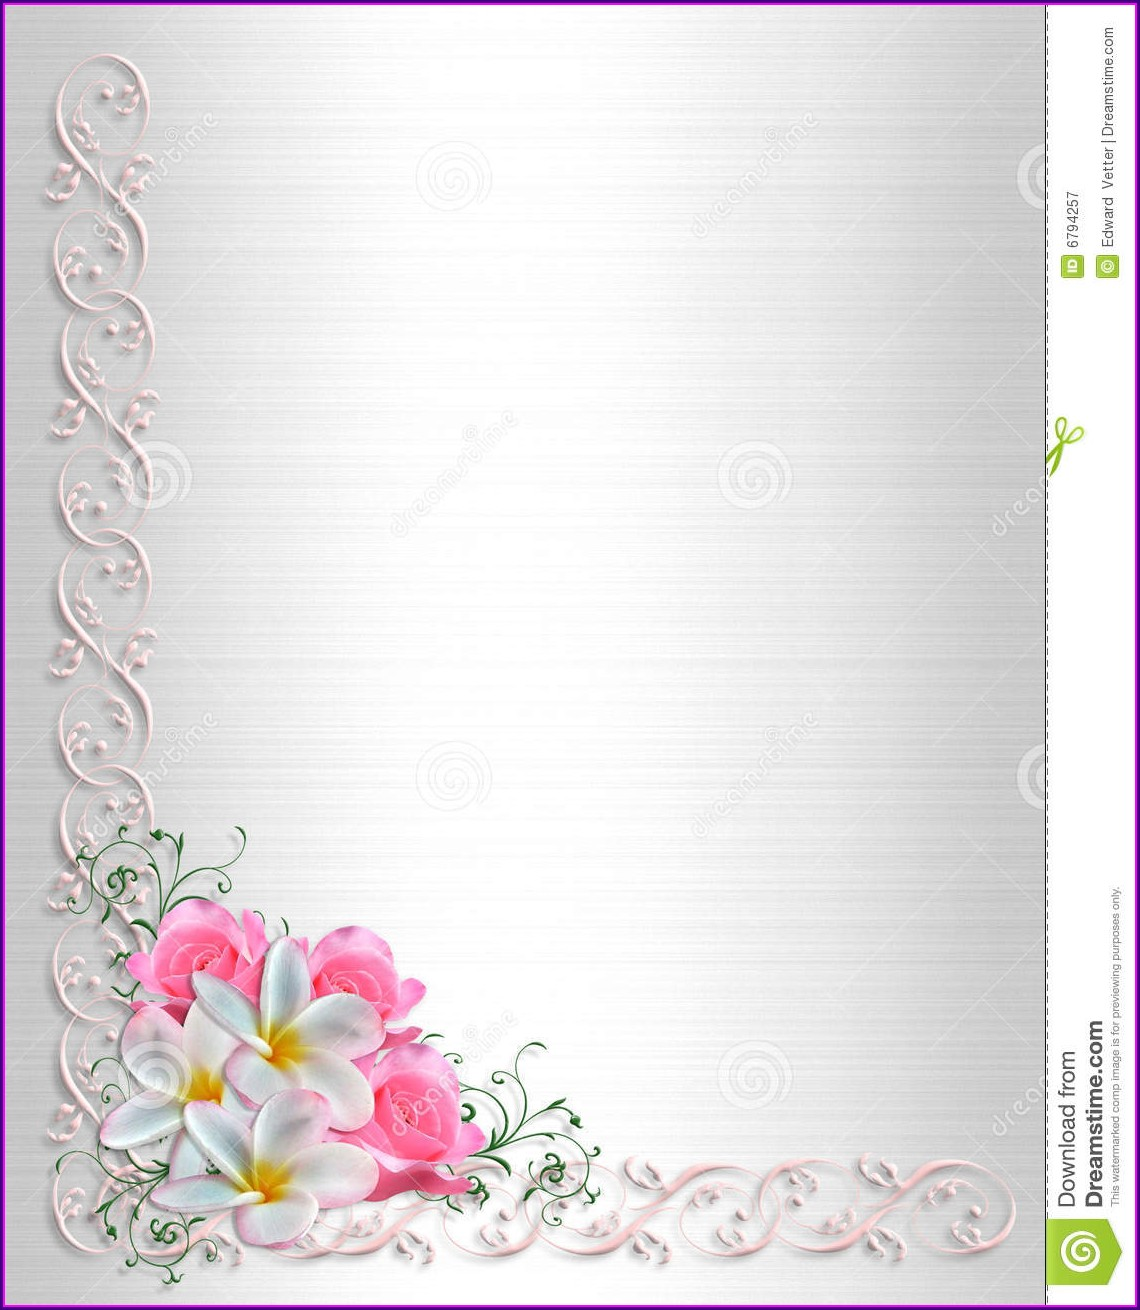 Wedding Invitation Background Designs Free Download